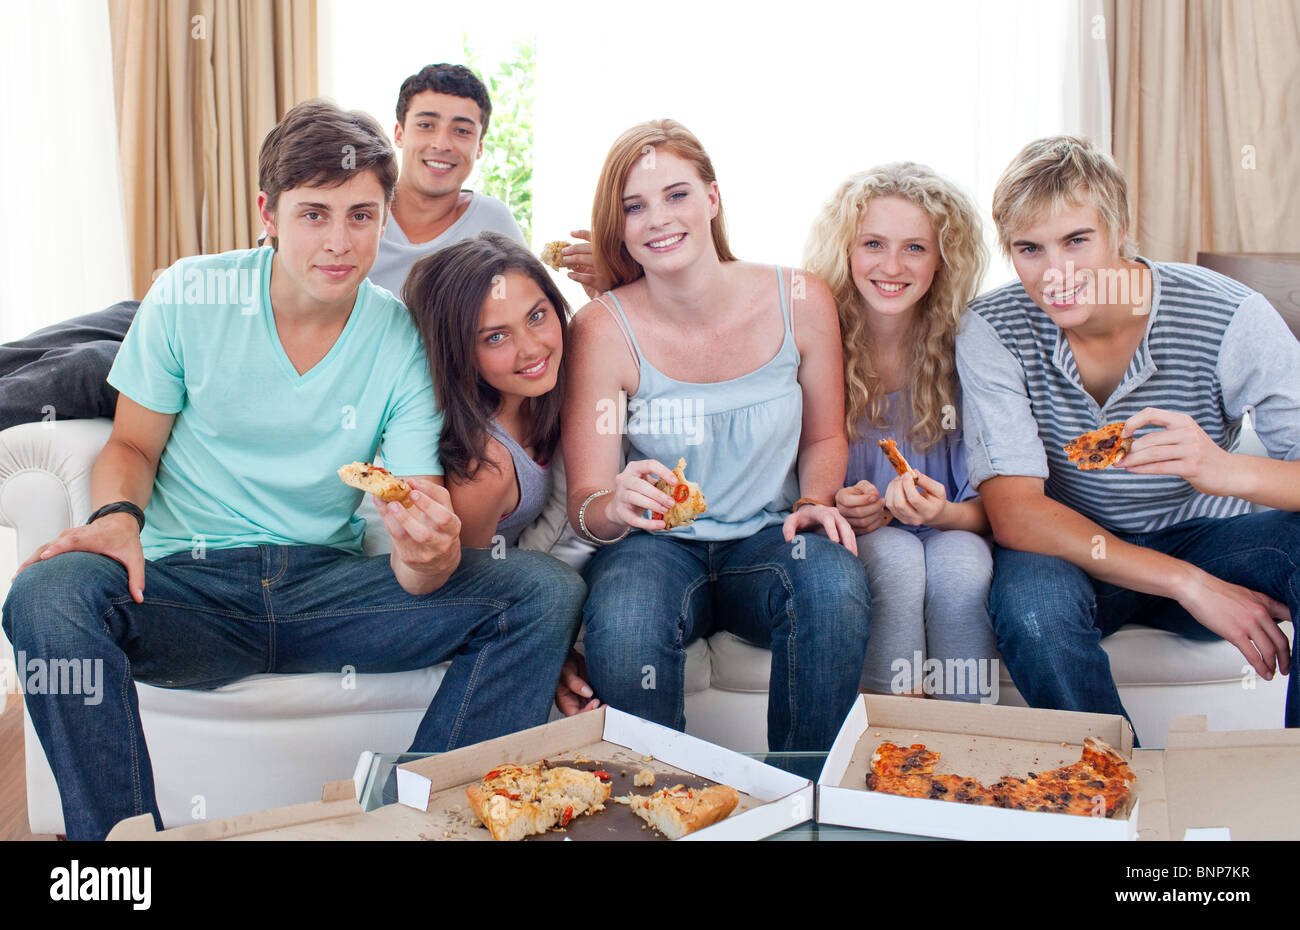 Adolescents eating pizza at home - Stock Image